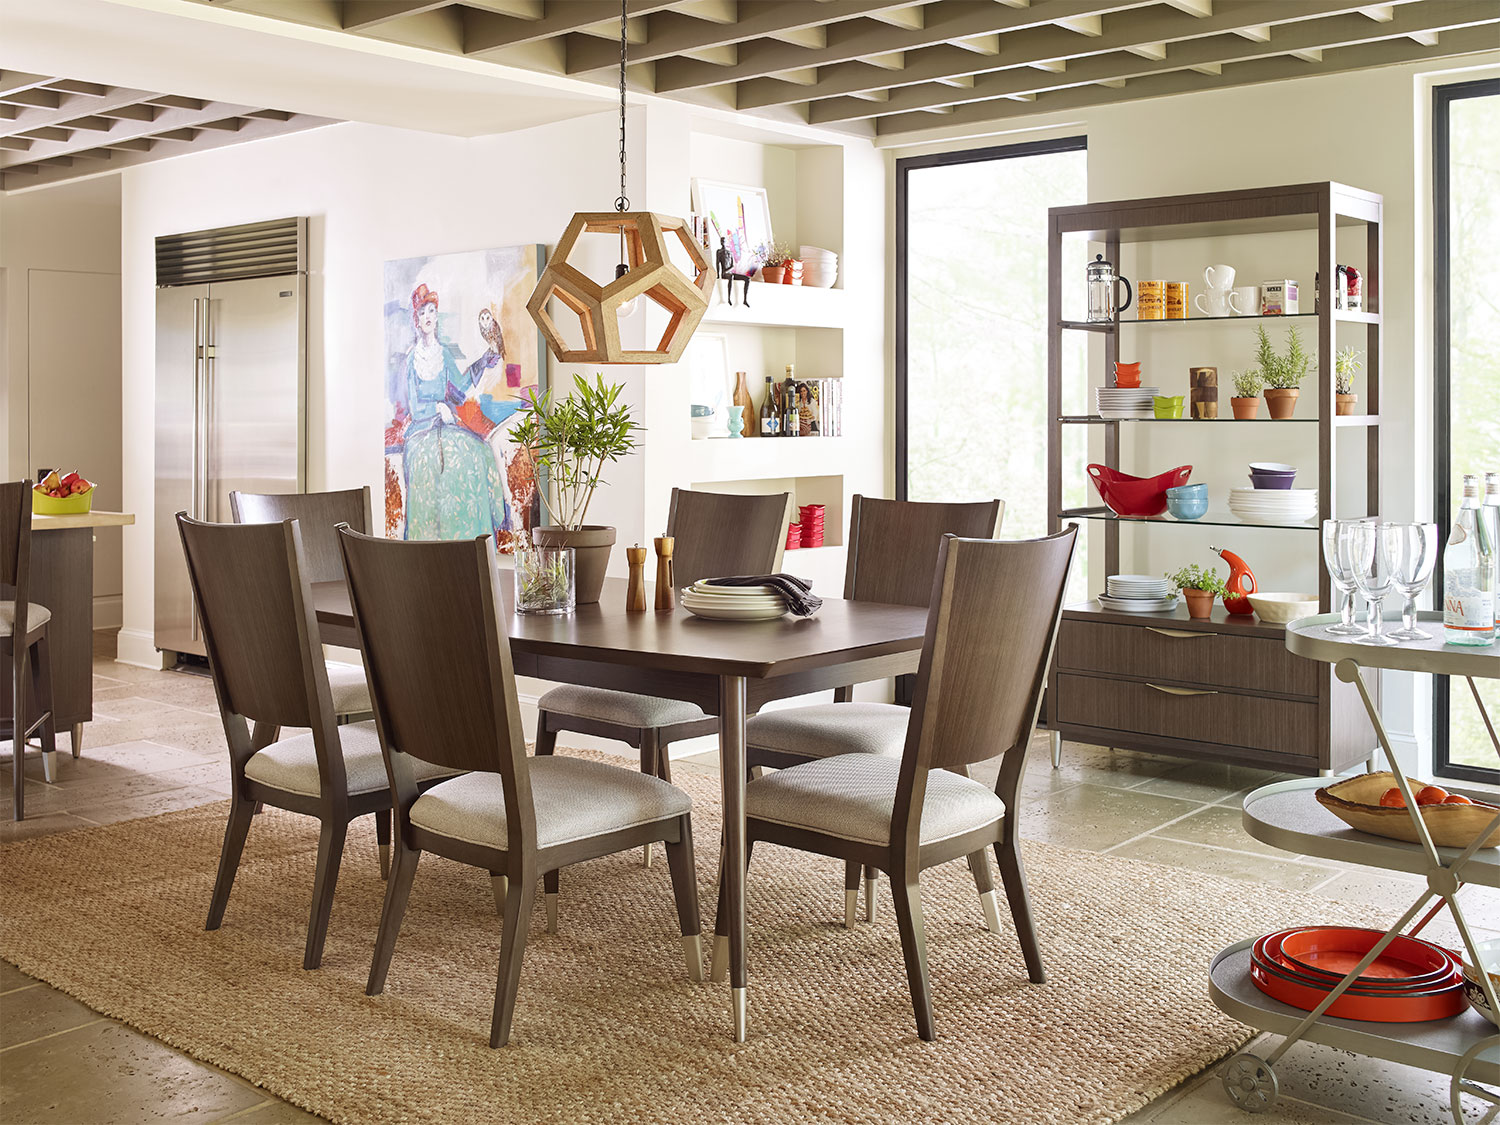 The Rachael Ray Soho Dining Room Collection - Ash Brown